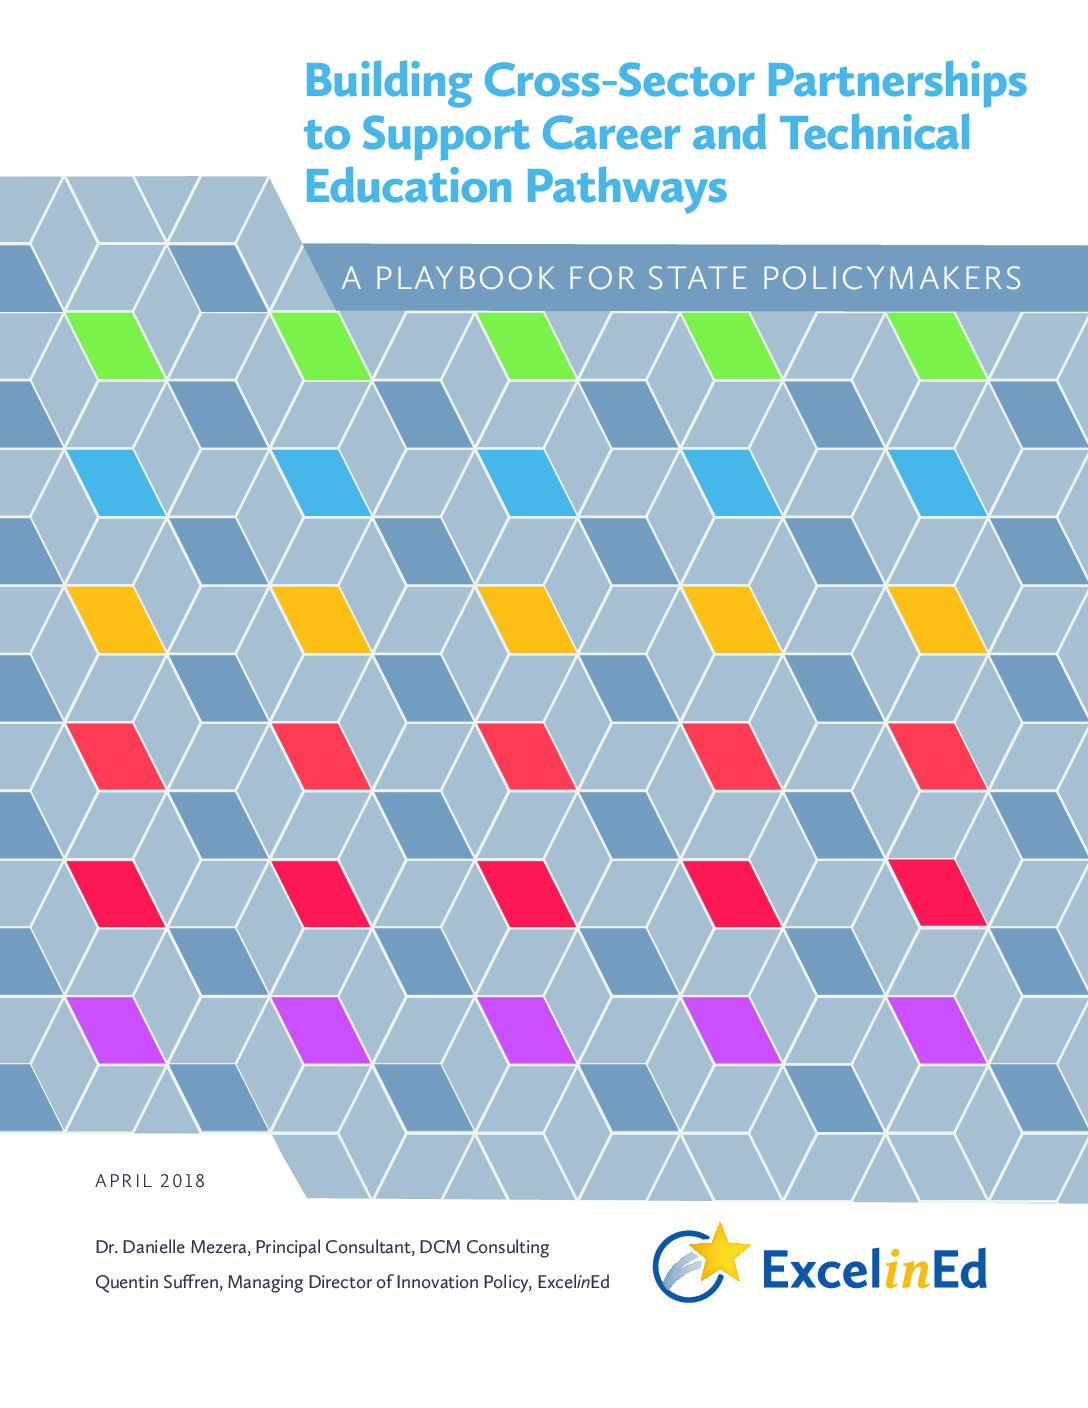 Playbook 2: Building Cross-Sector Partnerships to Support Career and Technical Education Pathways &#8211; May 2018>									 									</a> 									<a href=